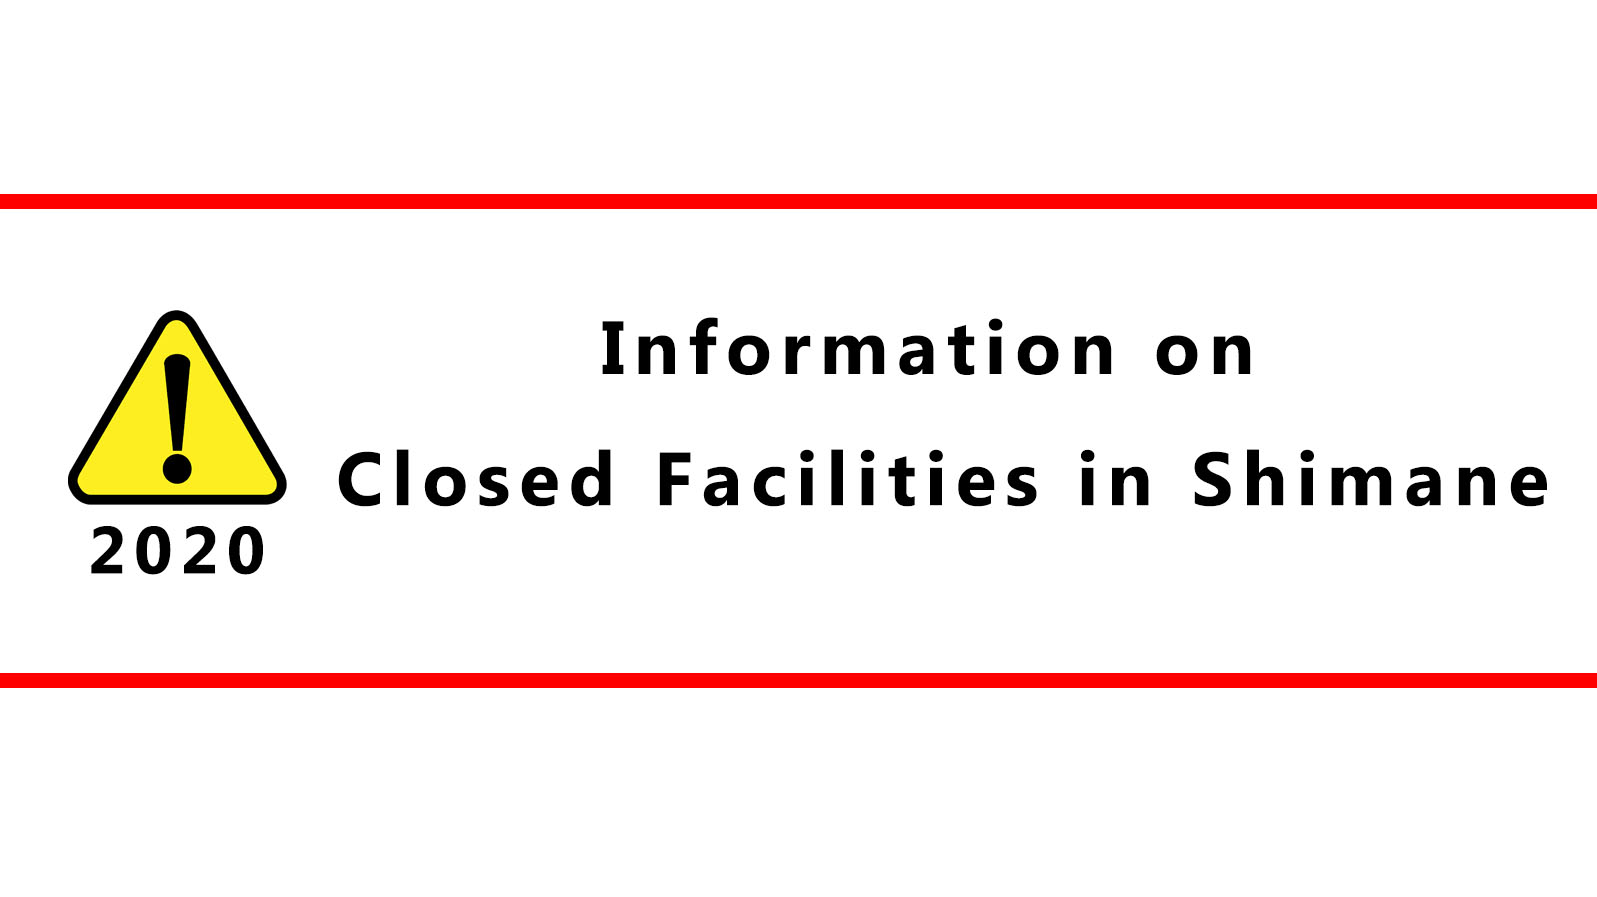 Information on Closed Facilities